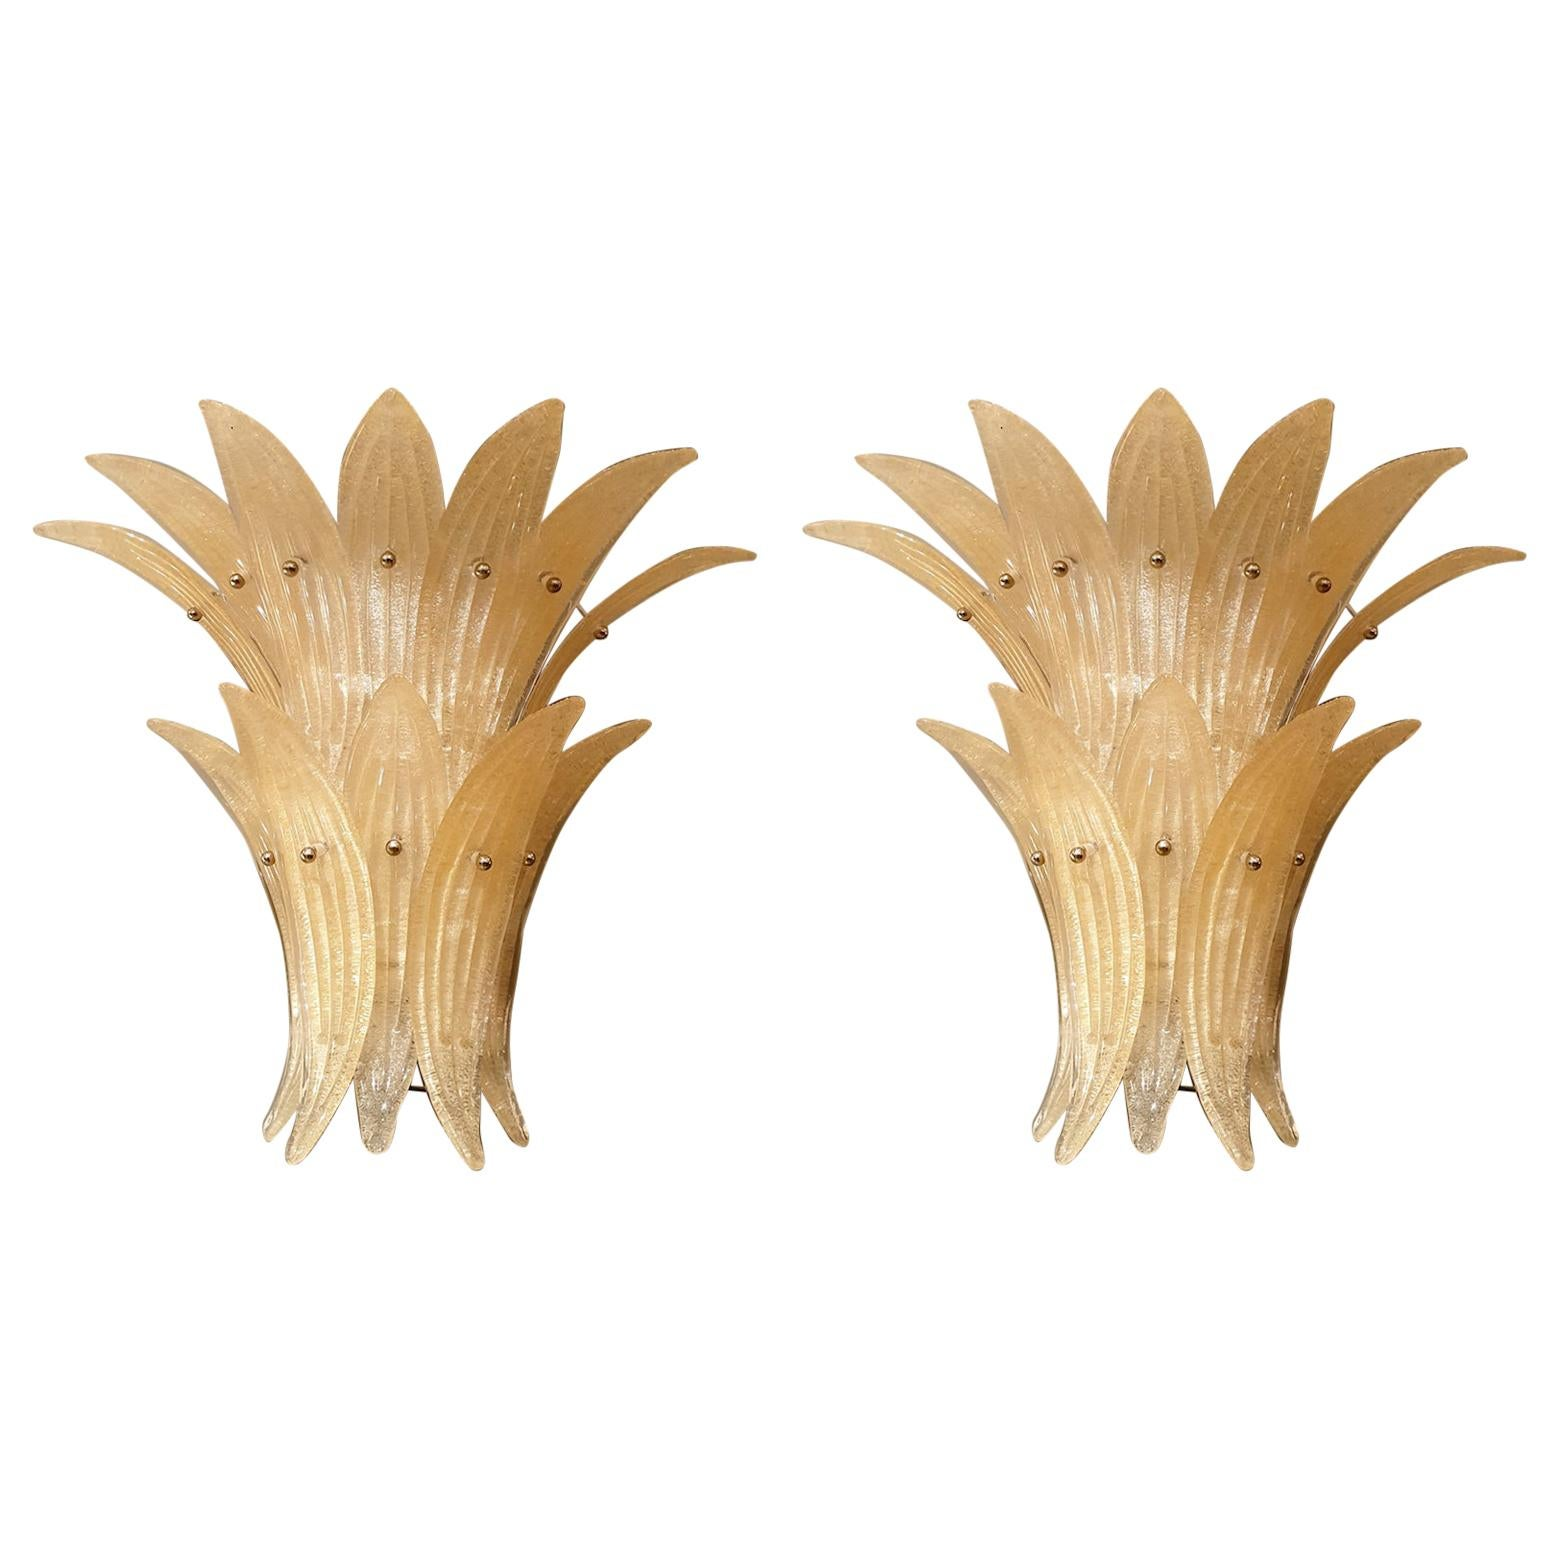 Pair of Mid-Century Modern Beige Murano Glass Pineapple Sconces, by Venini 1970s